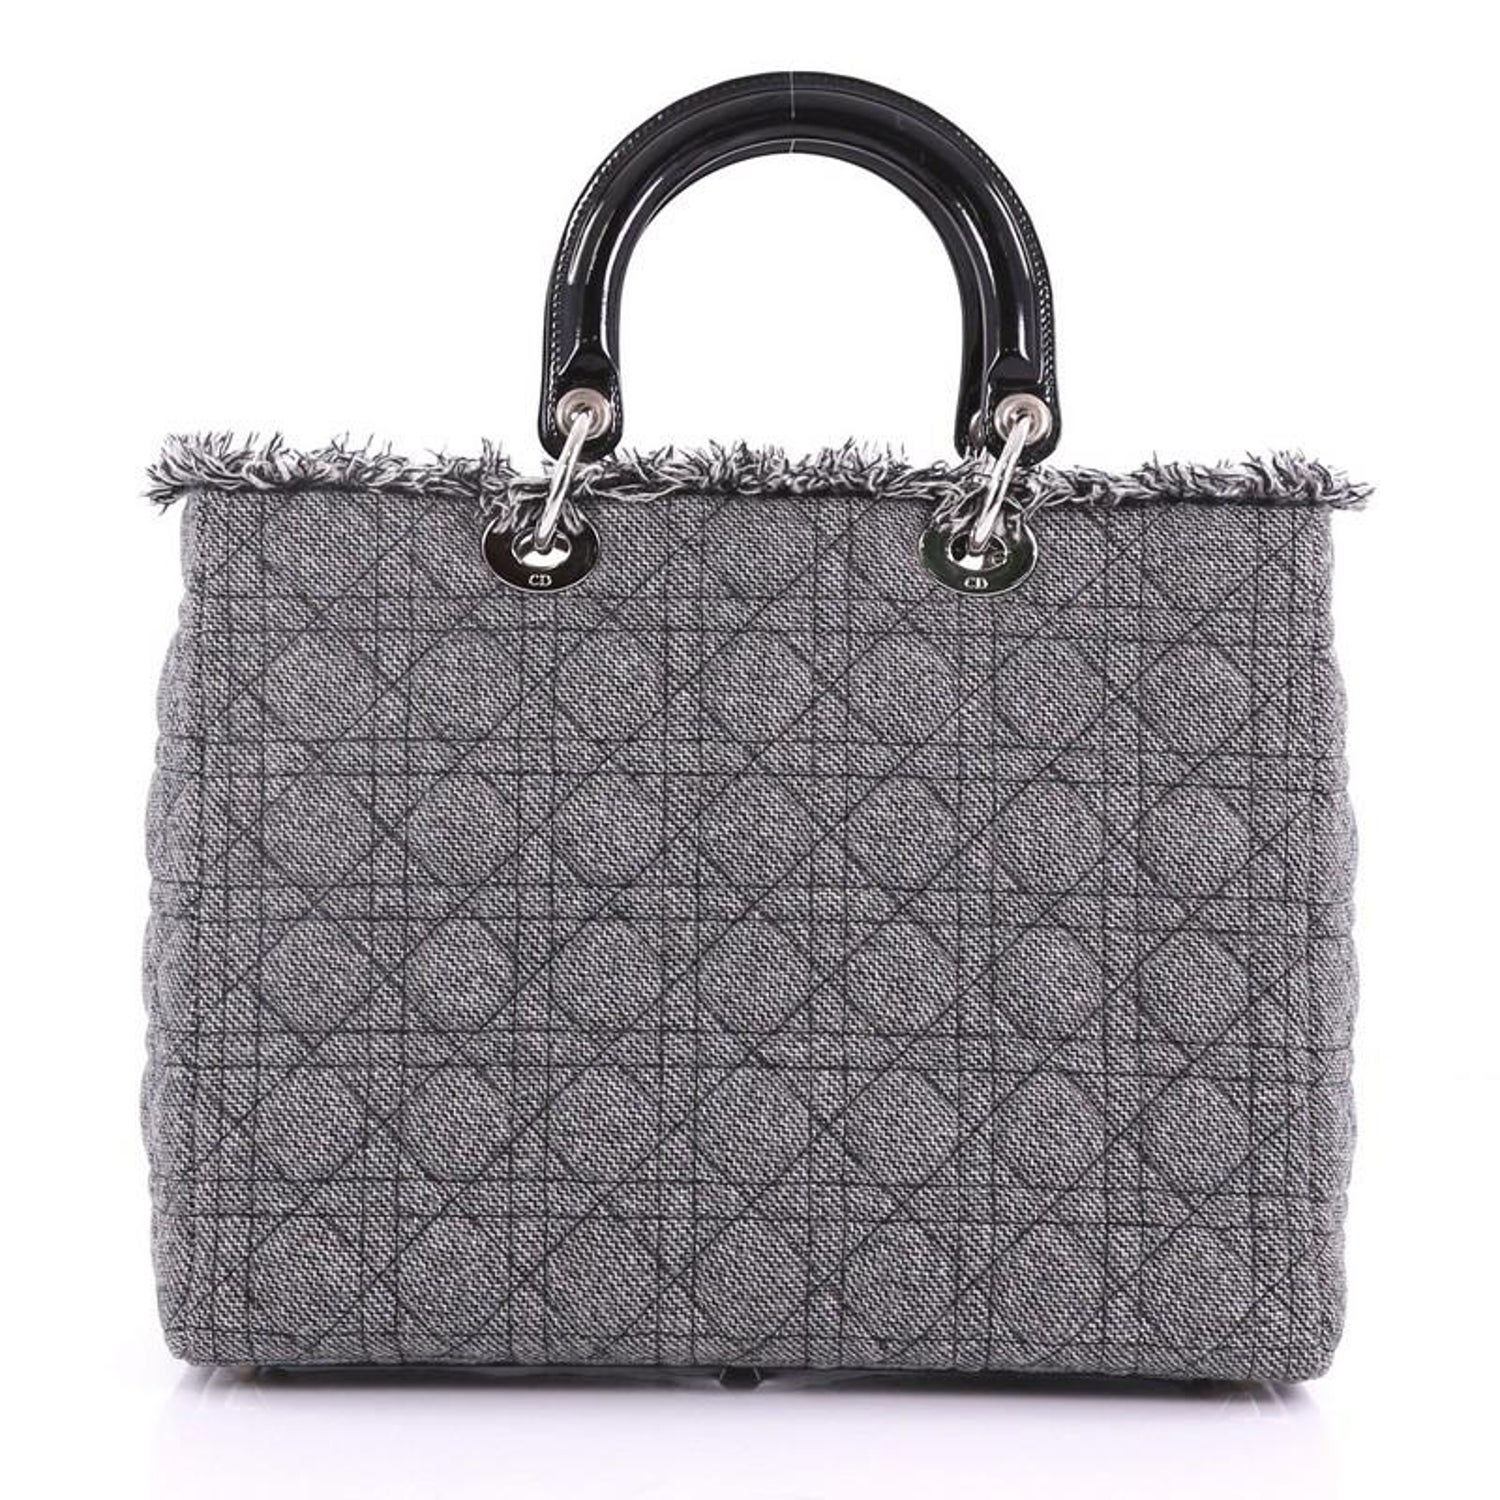 ffb0022922 Christian Dior Lady Dior Handbag Cannage Quilt Tweed with Patent Large For  Sale at 1stdibs